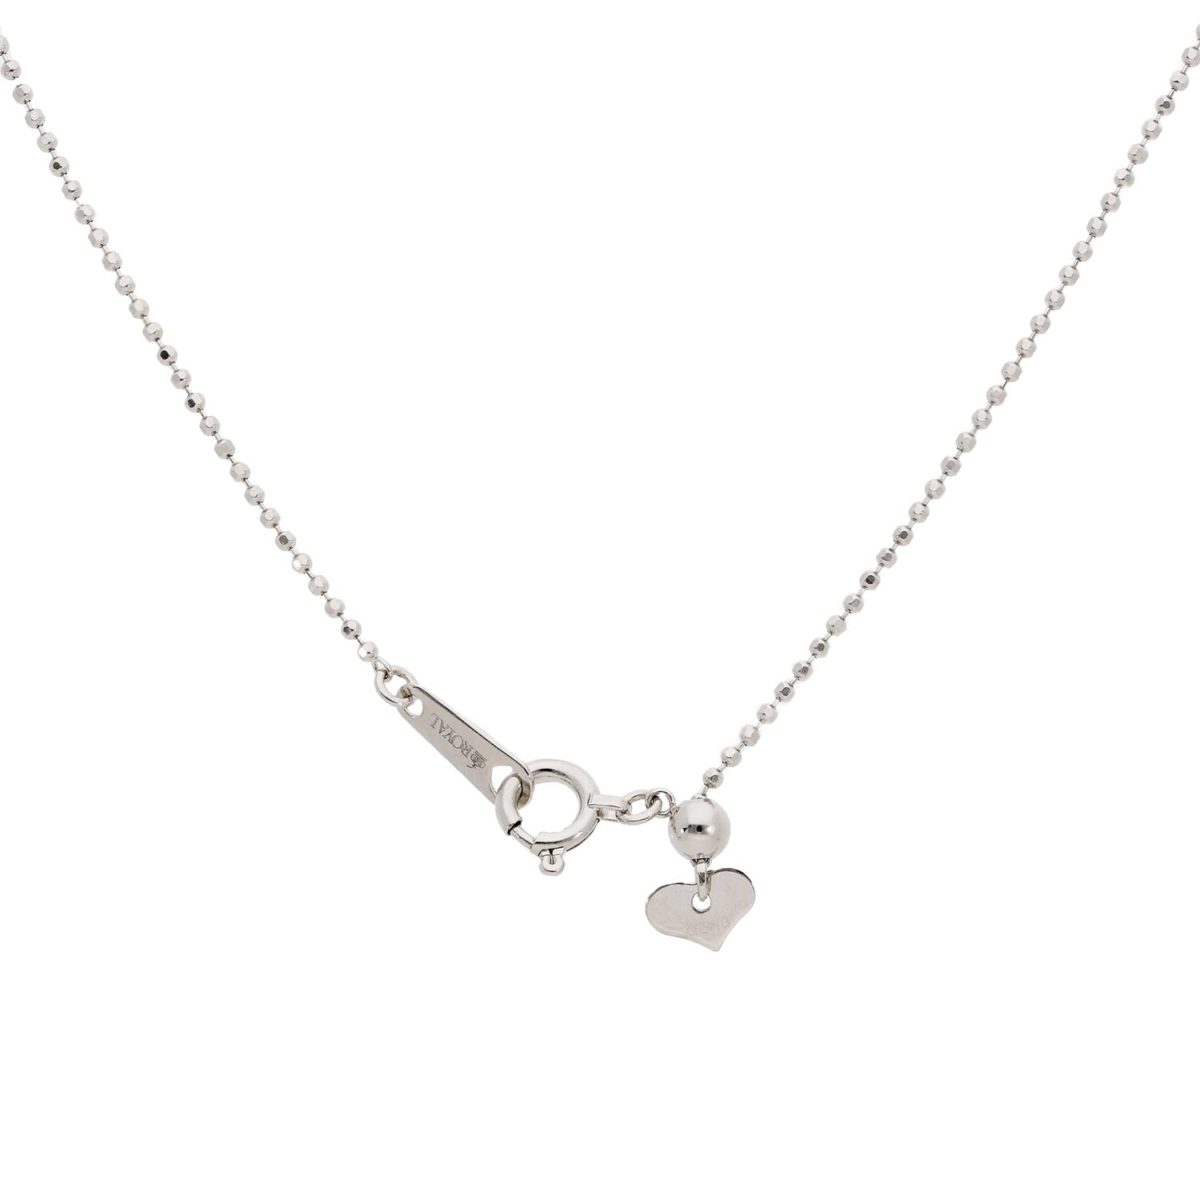 Diamond NecklaceStyle #: ROY-WP8894D